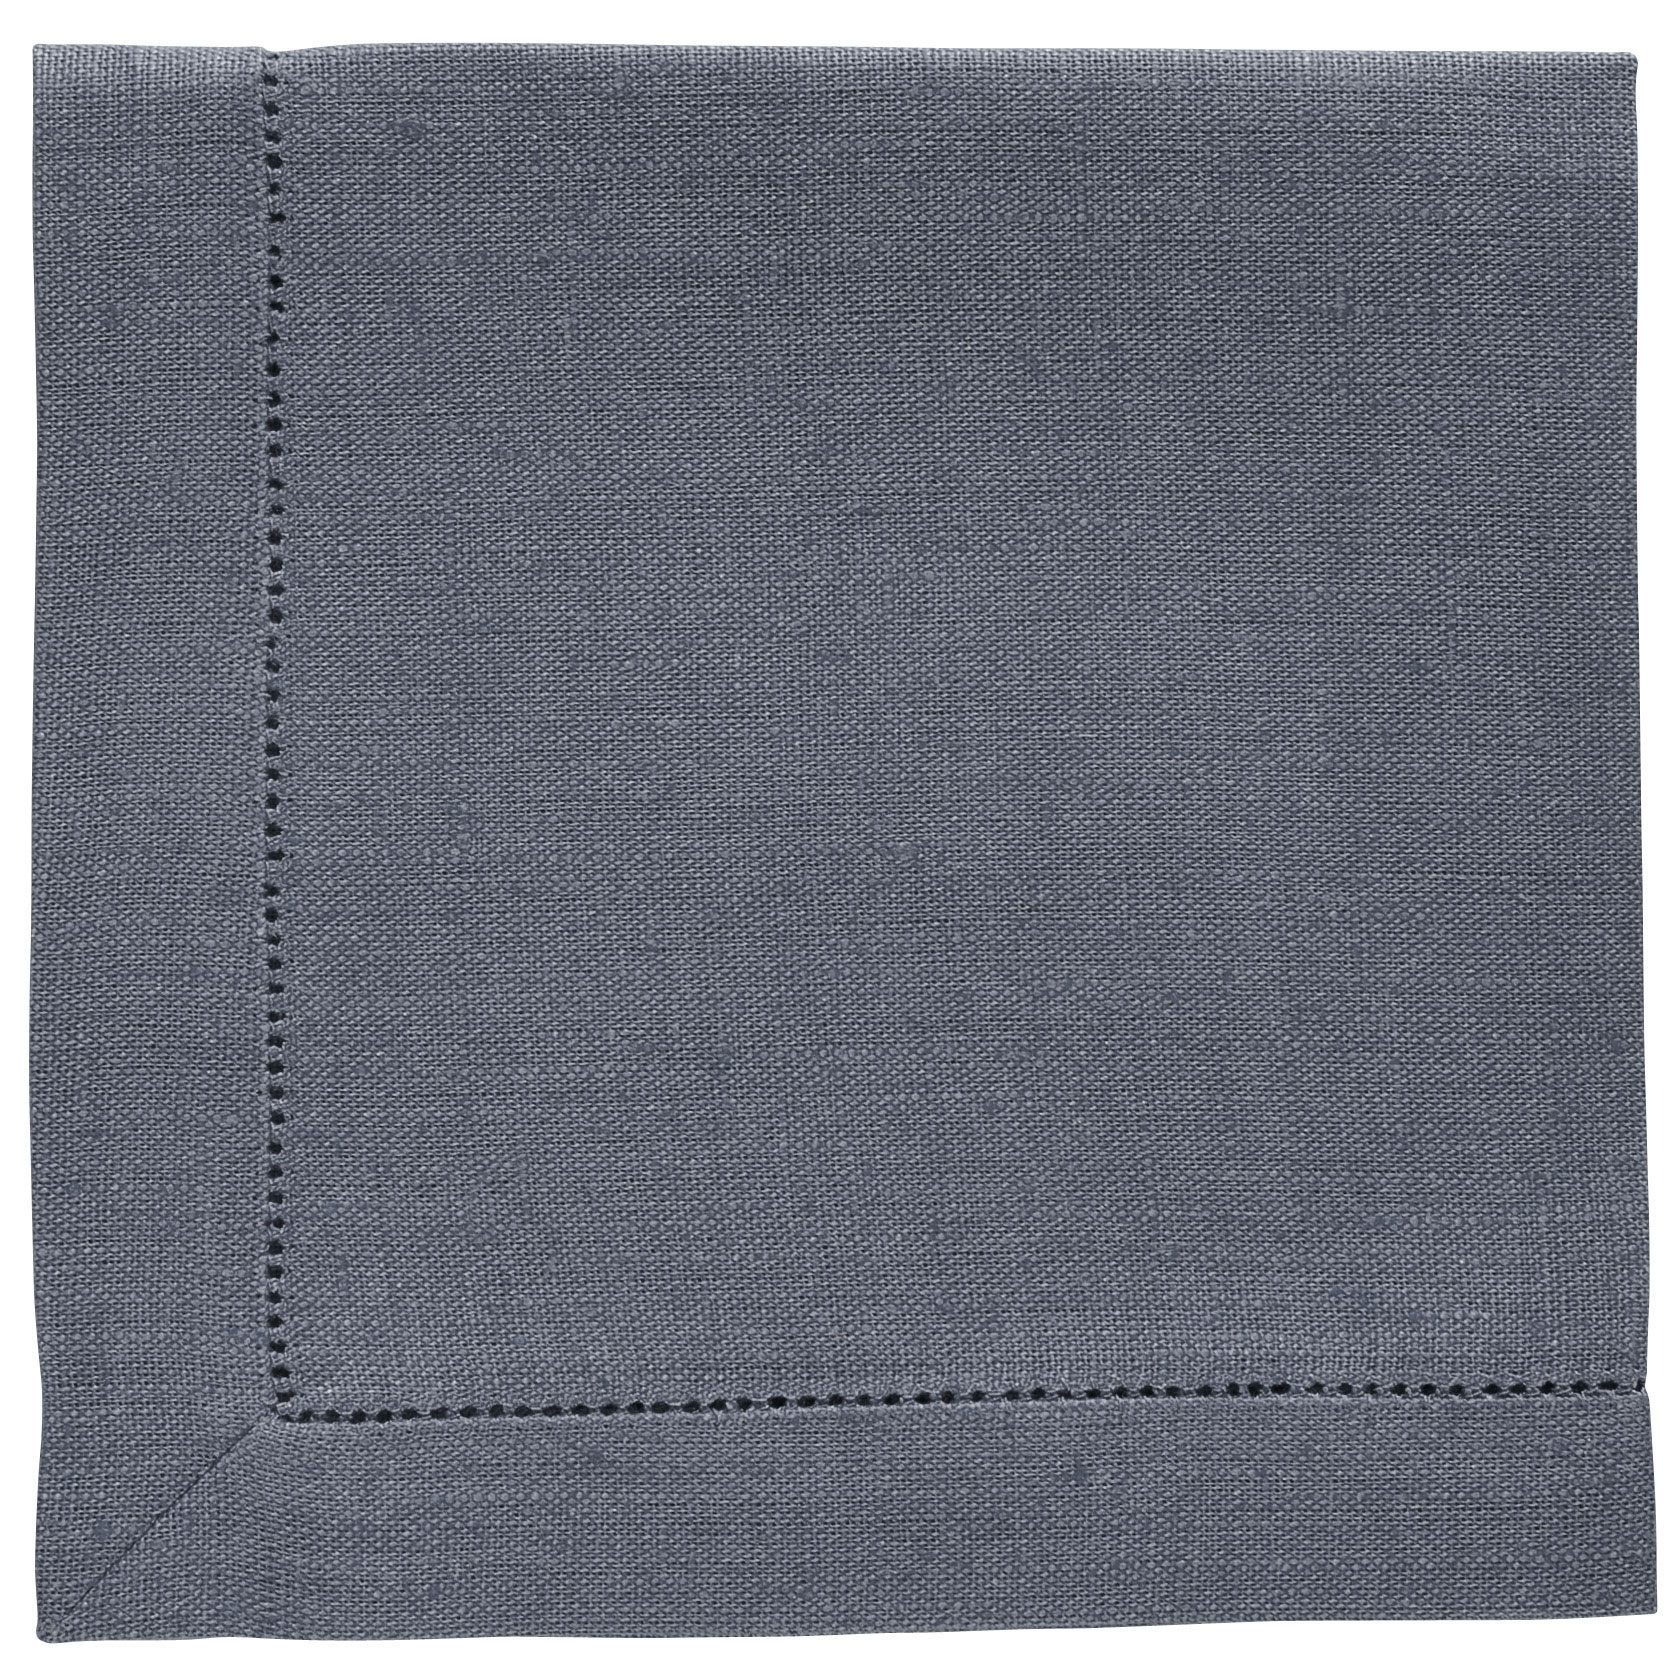 NAPKIN <br />quicksilver gray